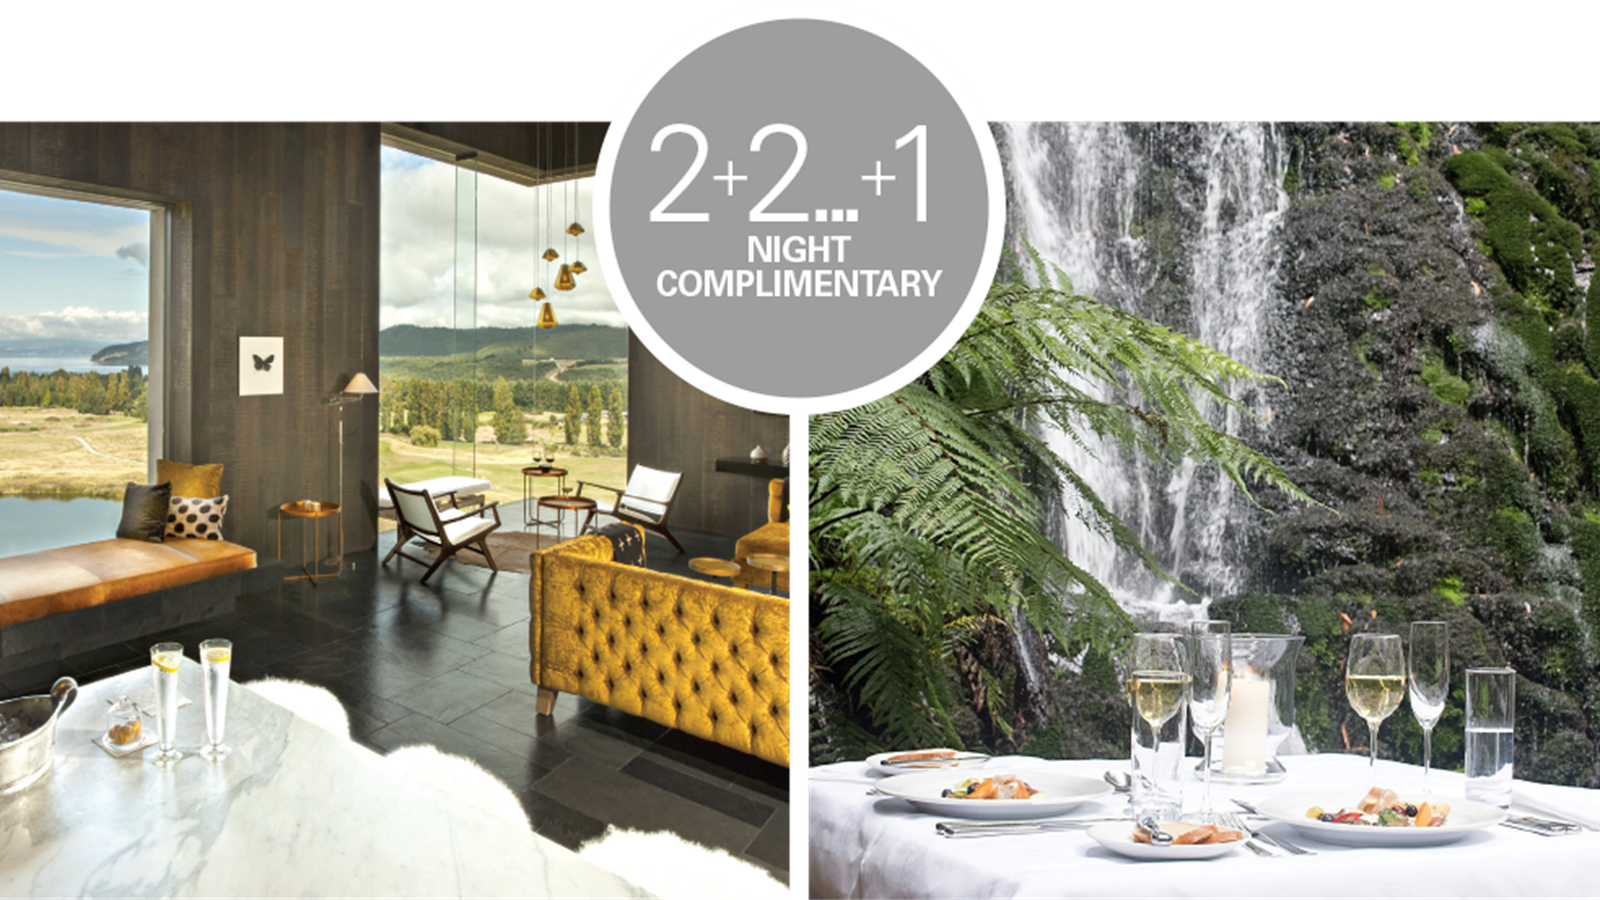 Ultimate New Zealand Escape 2+2 ...+1 complimentary